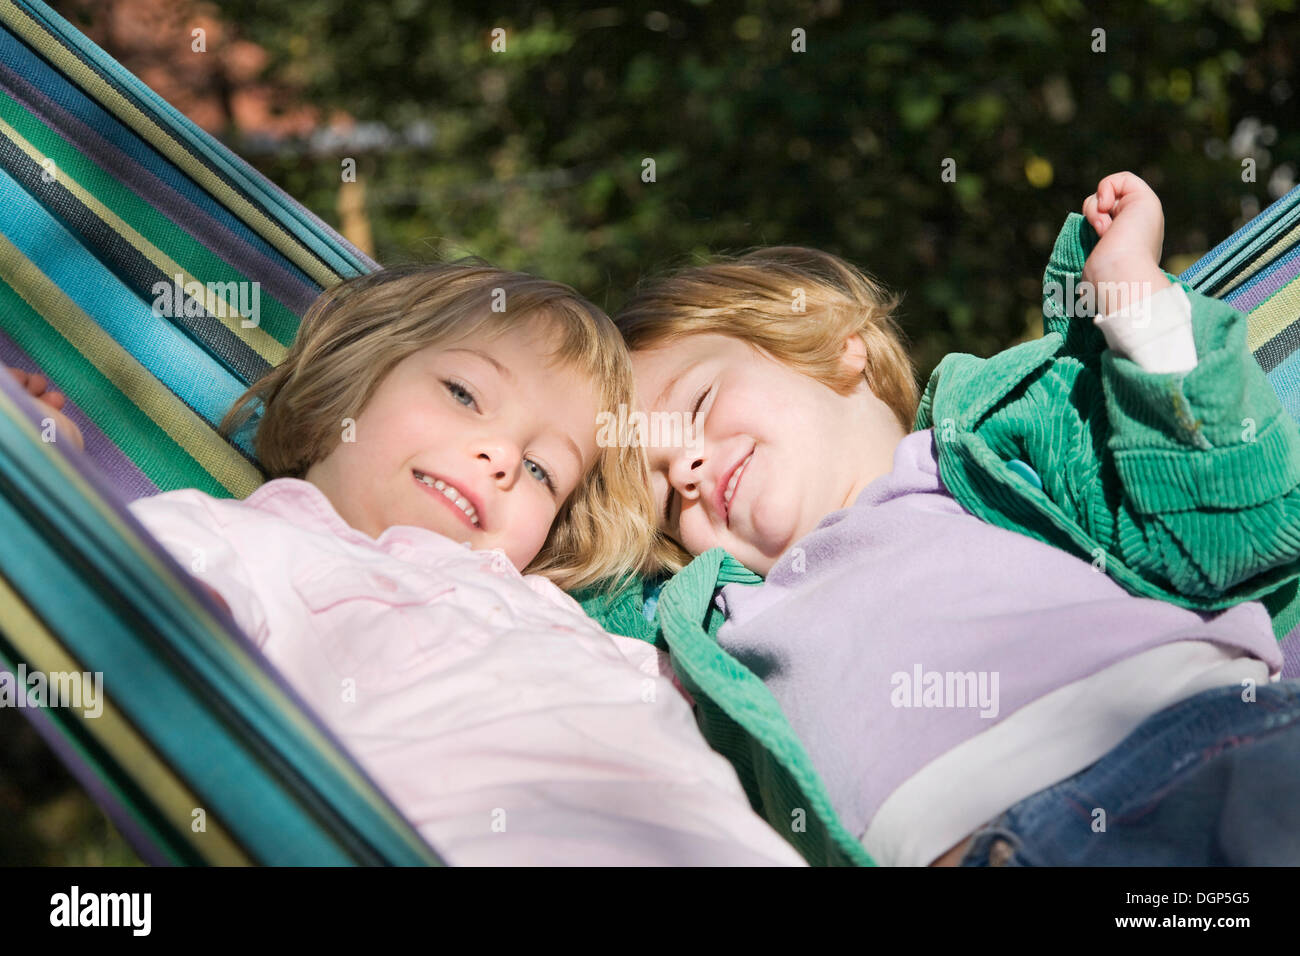 Two girls in a hammock - Stock Image